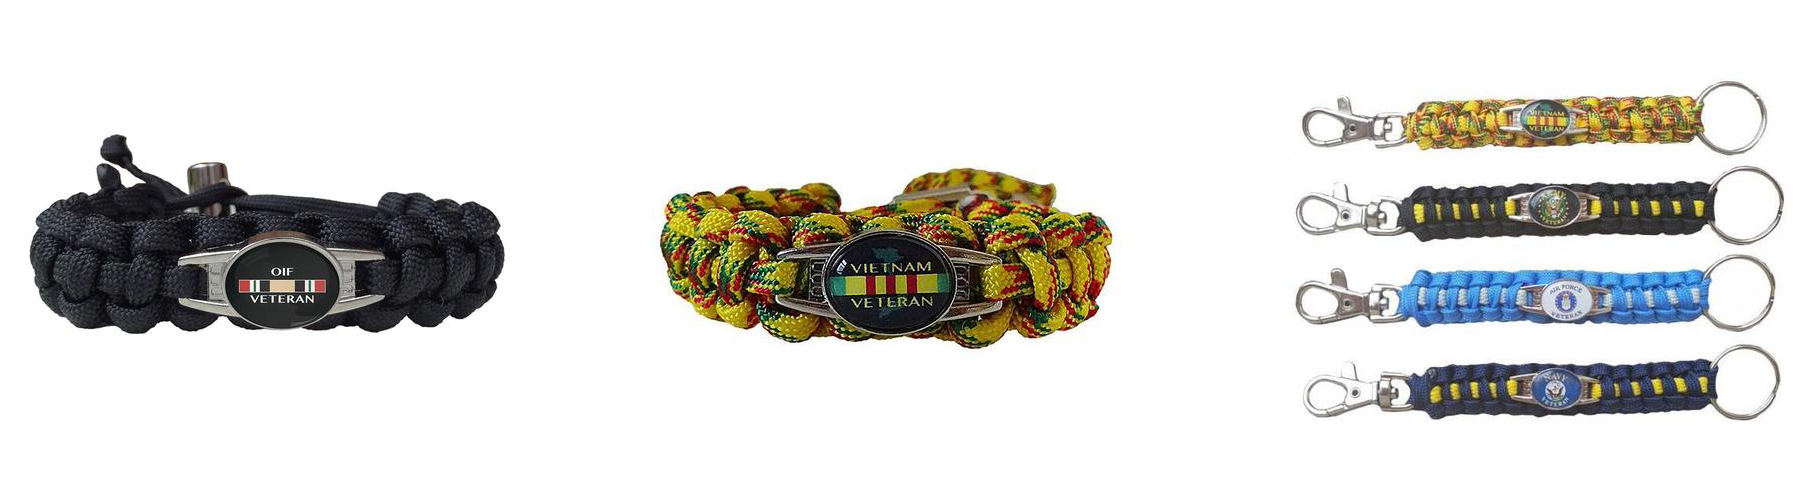 ARMED FORCES PARACORD BRACELET